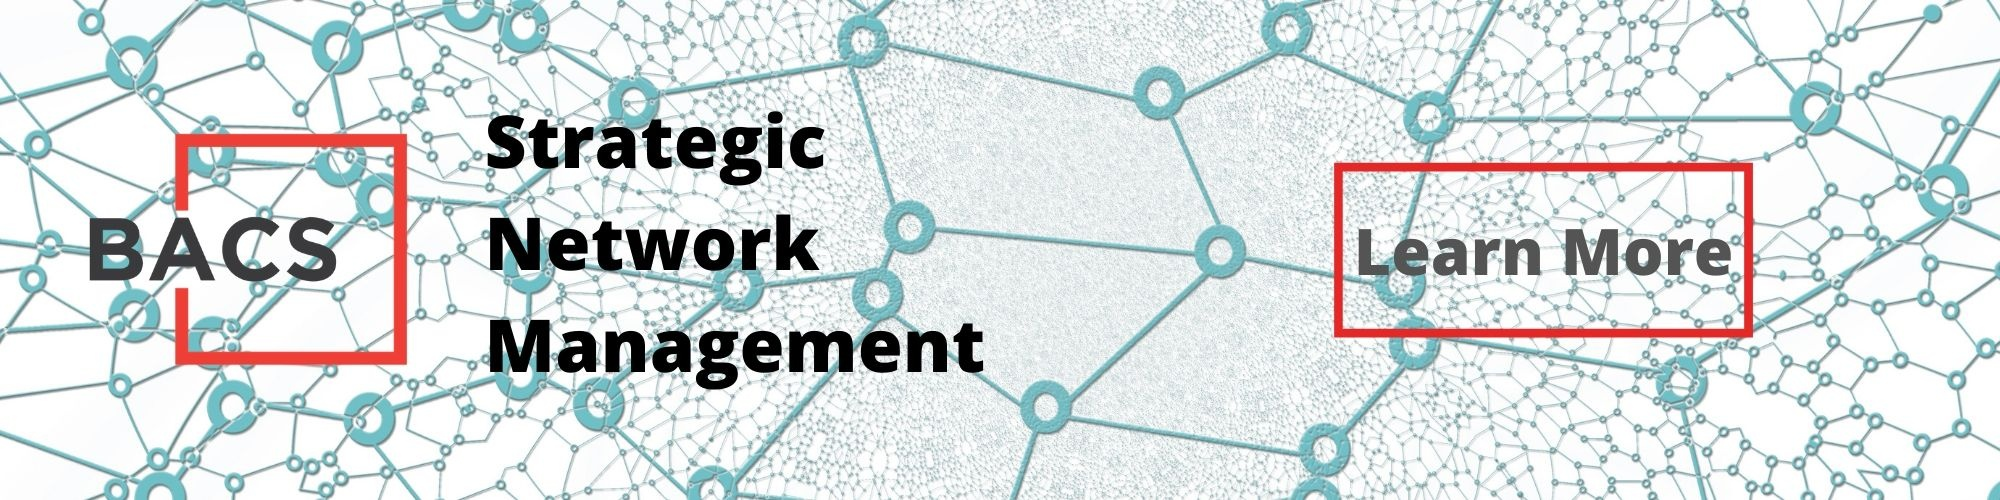 Strategic Network Management